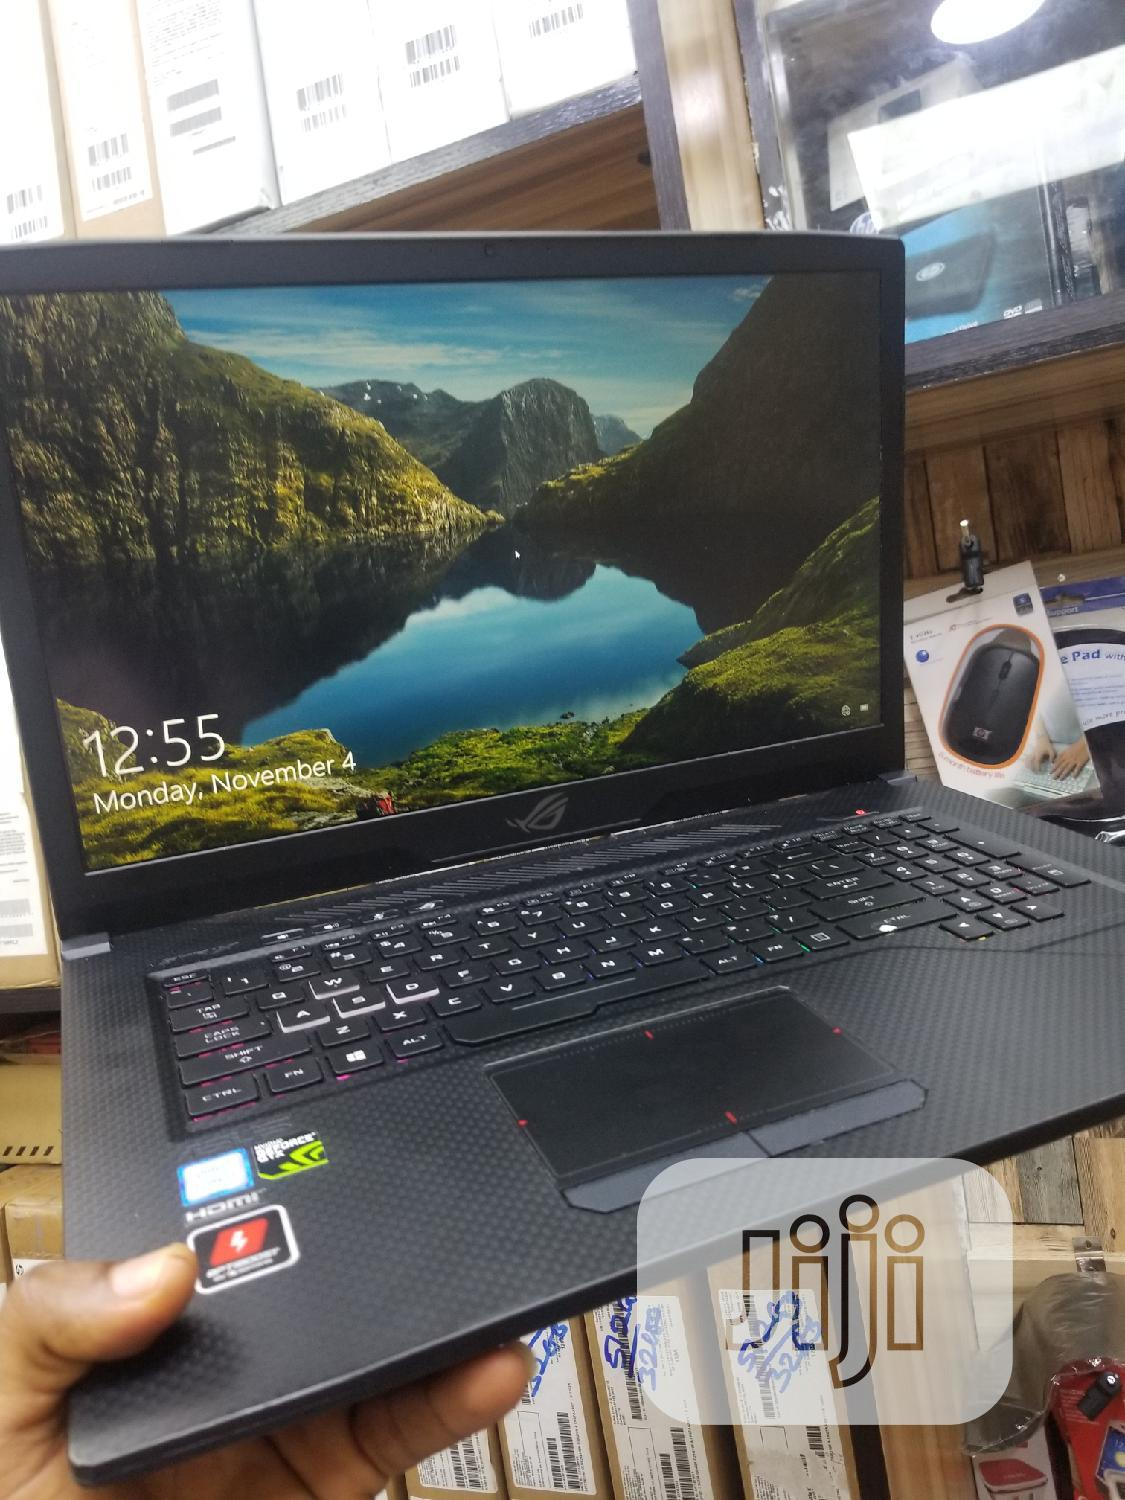 Laptop Asus ROG Strix GL703 16GB Intel Core i7 SSD 256GB | Laptops & Computers for sale in Ikeja, Lagos State, Nigeria